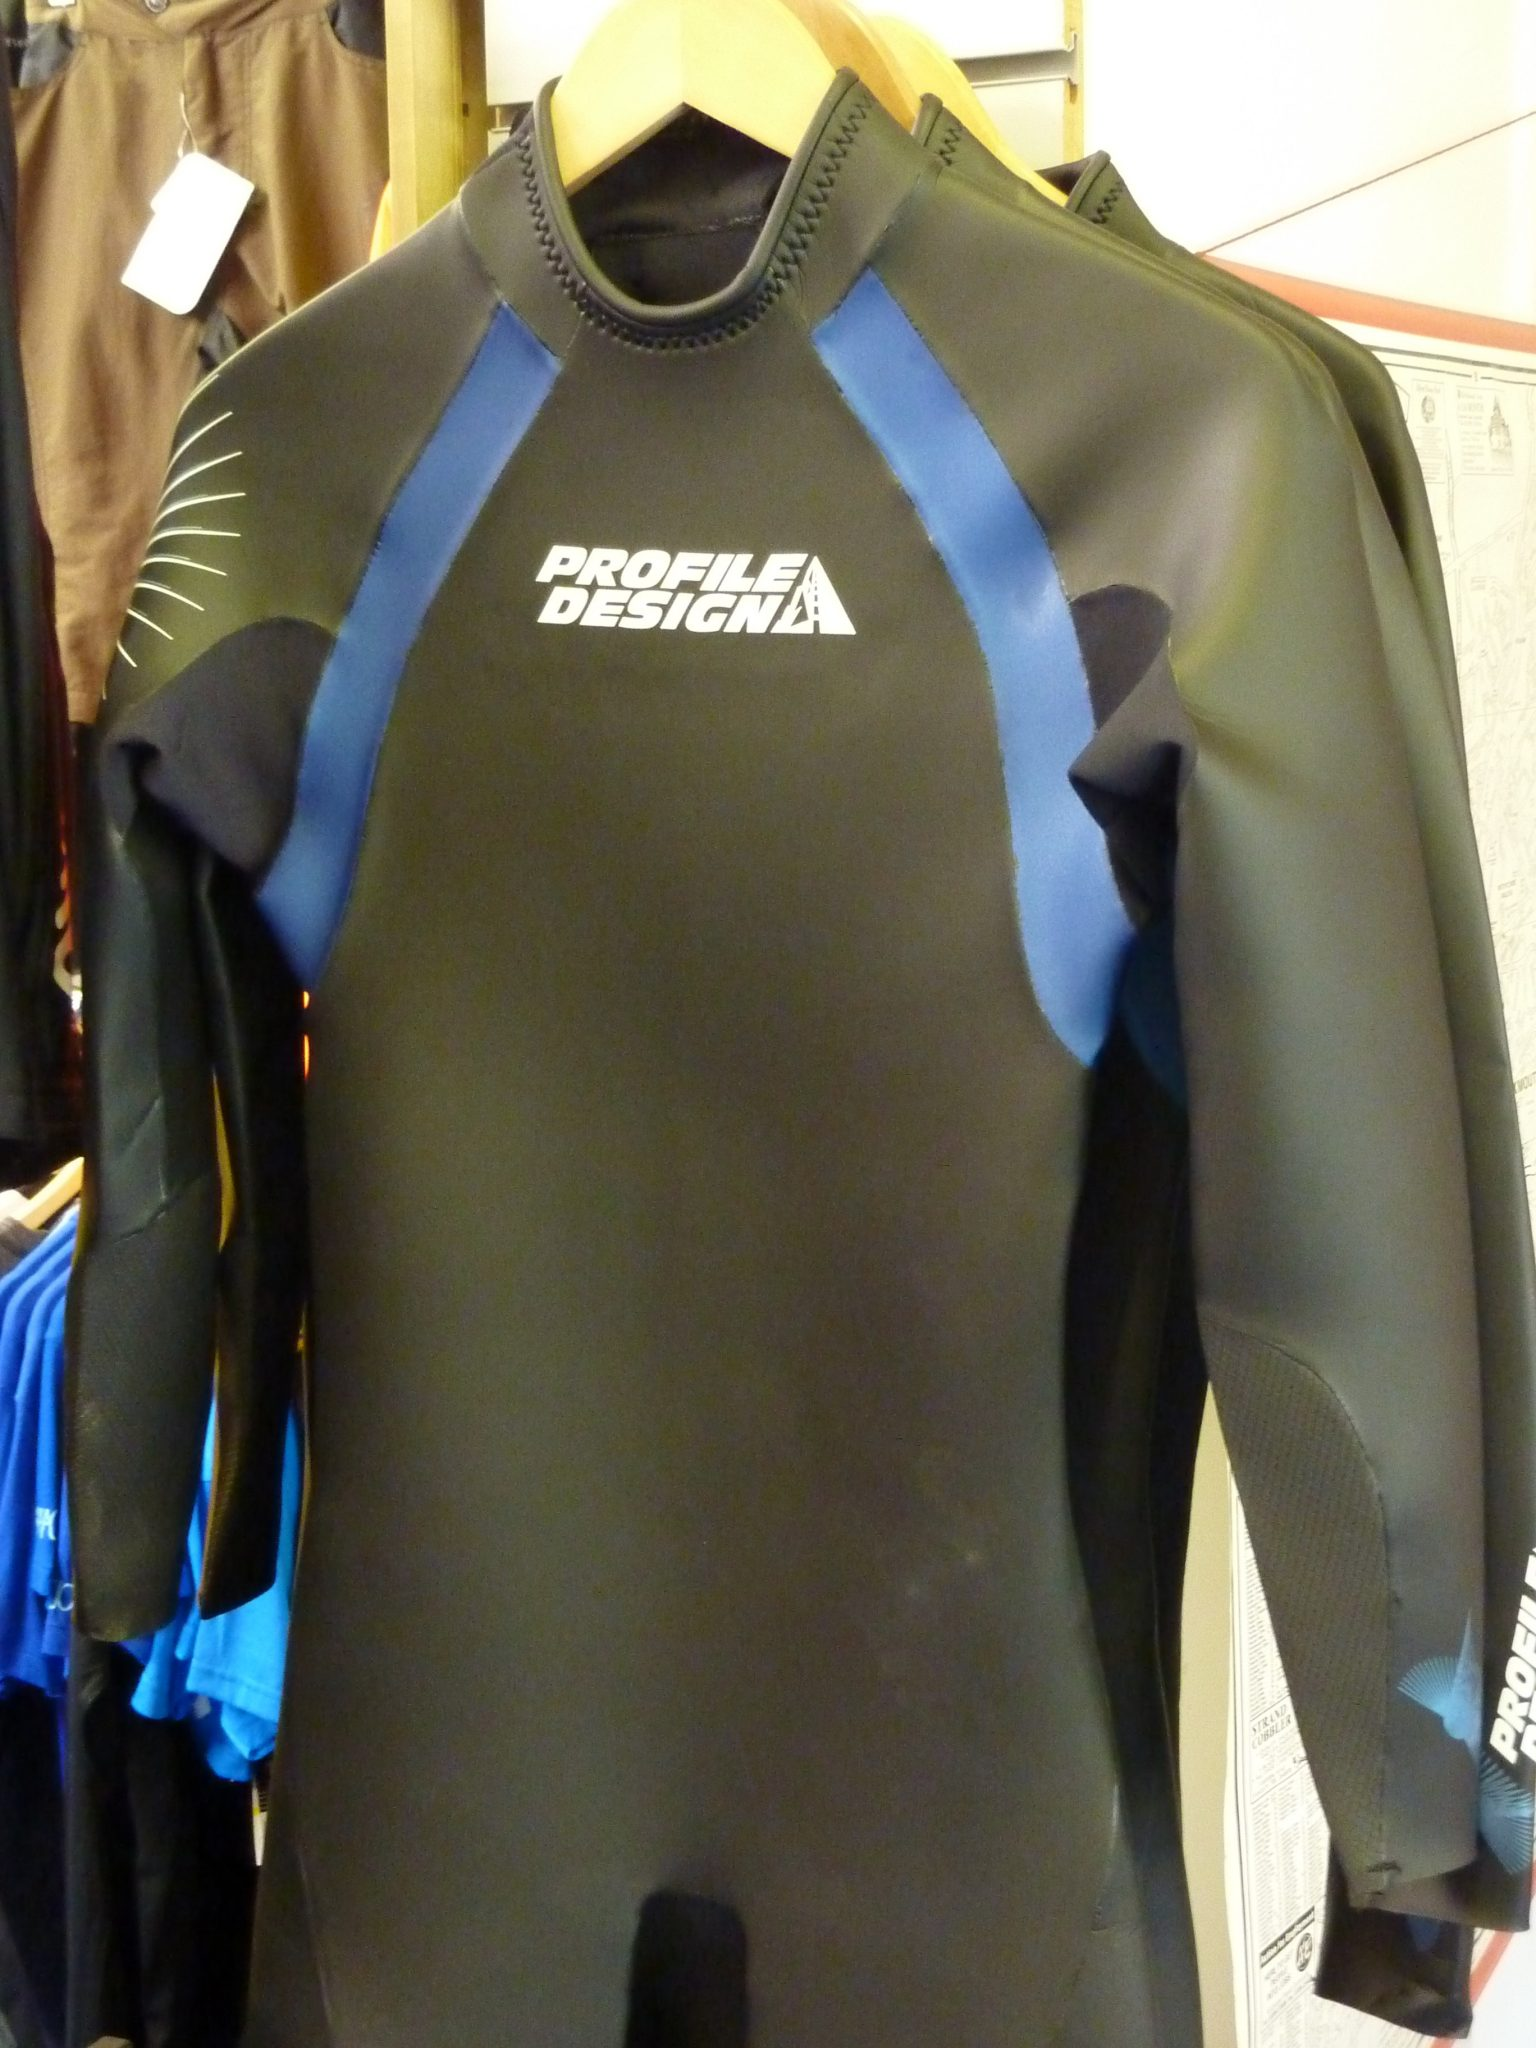 PROFILE DESIGN triathlon or open water wetsuits